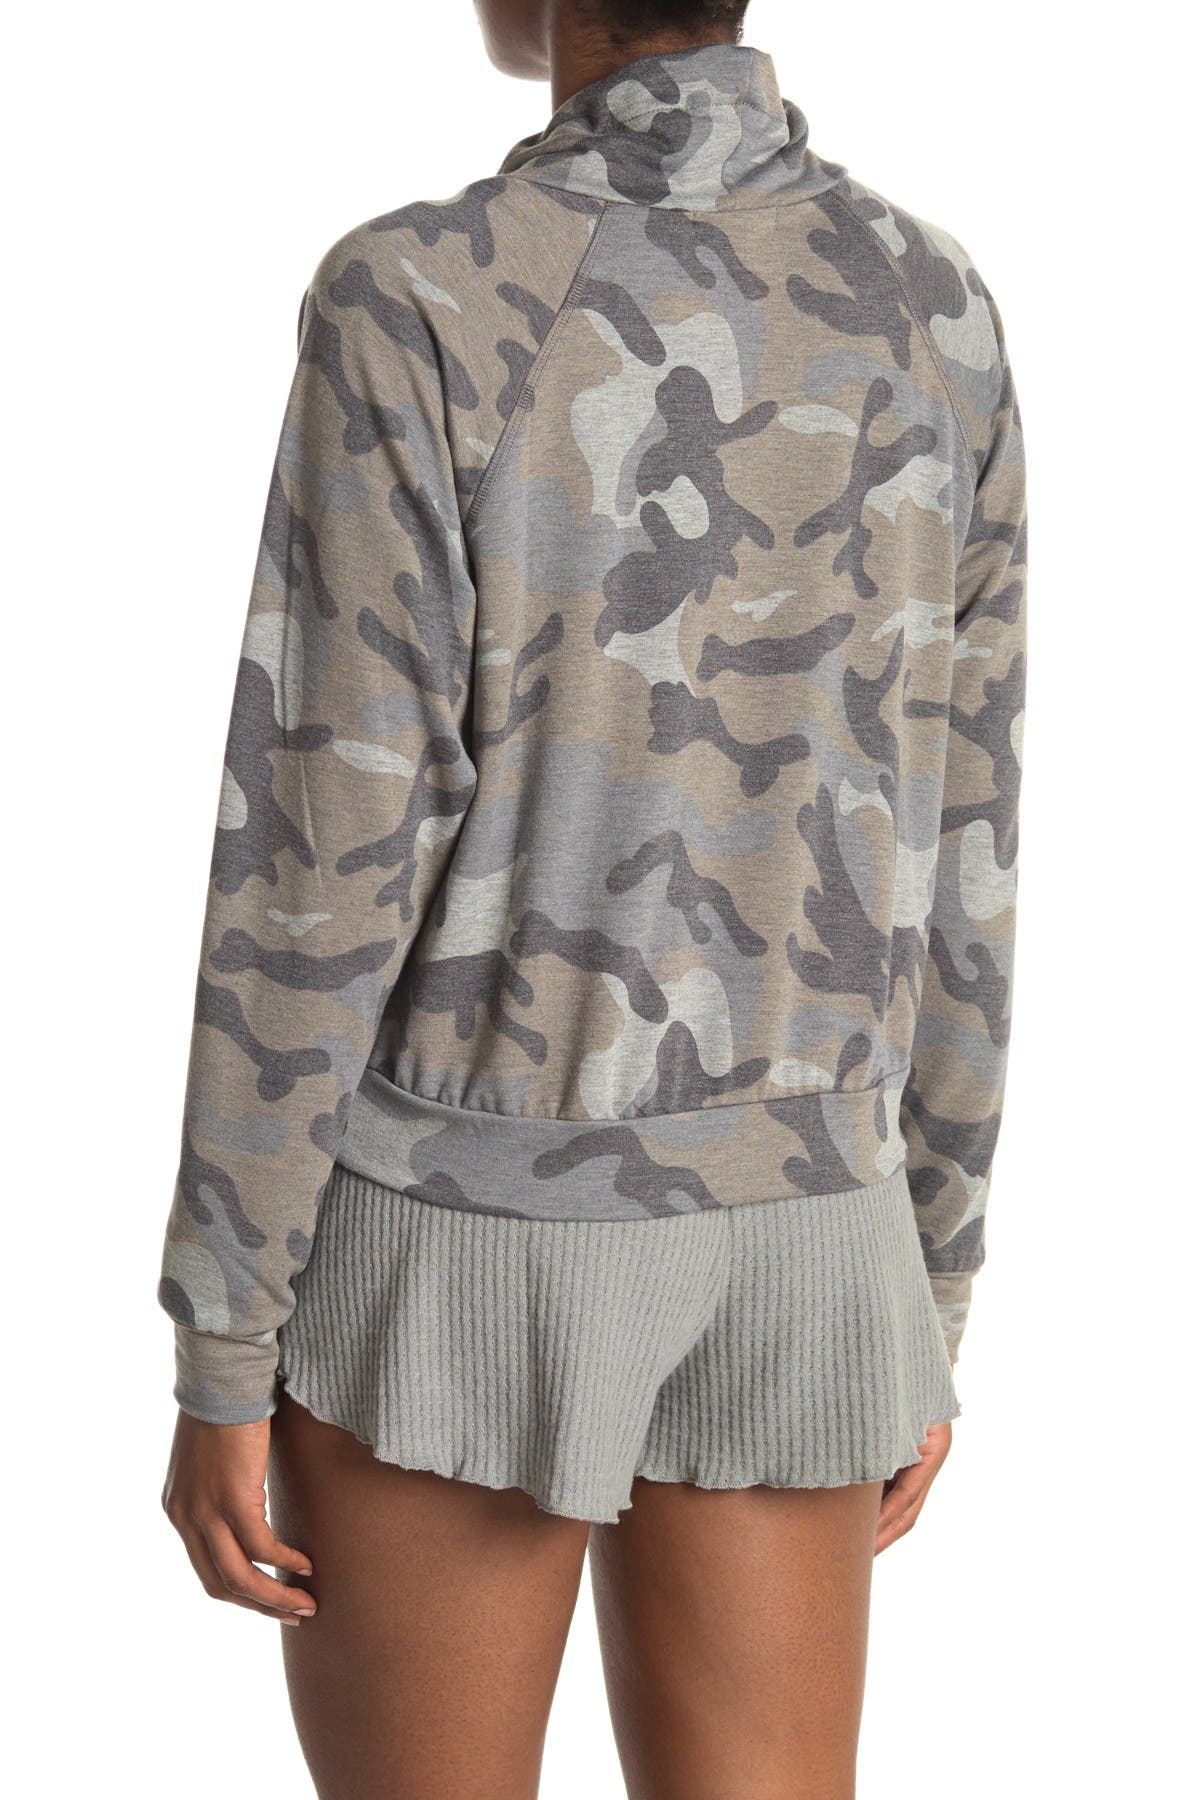 Image of Socialite Printed Drawstring Funnel Neck Pullover